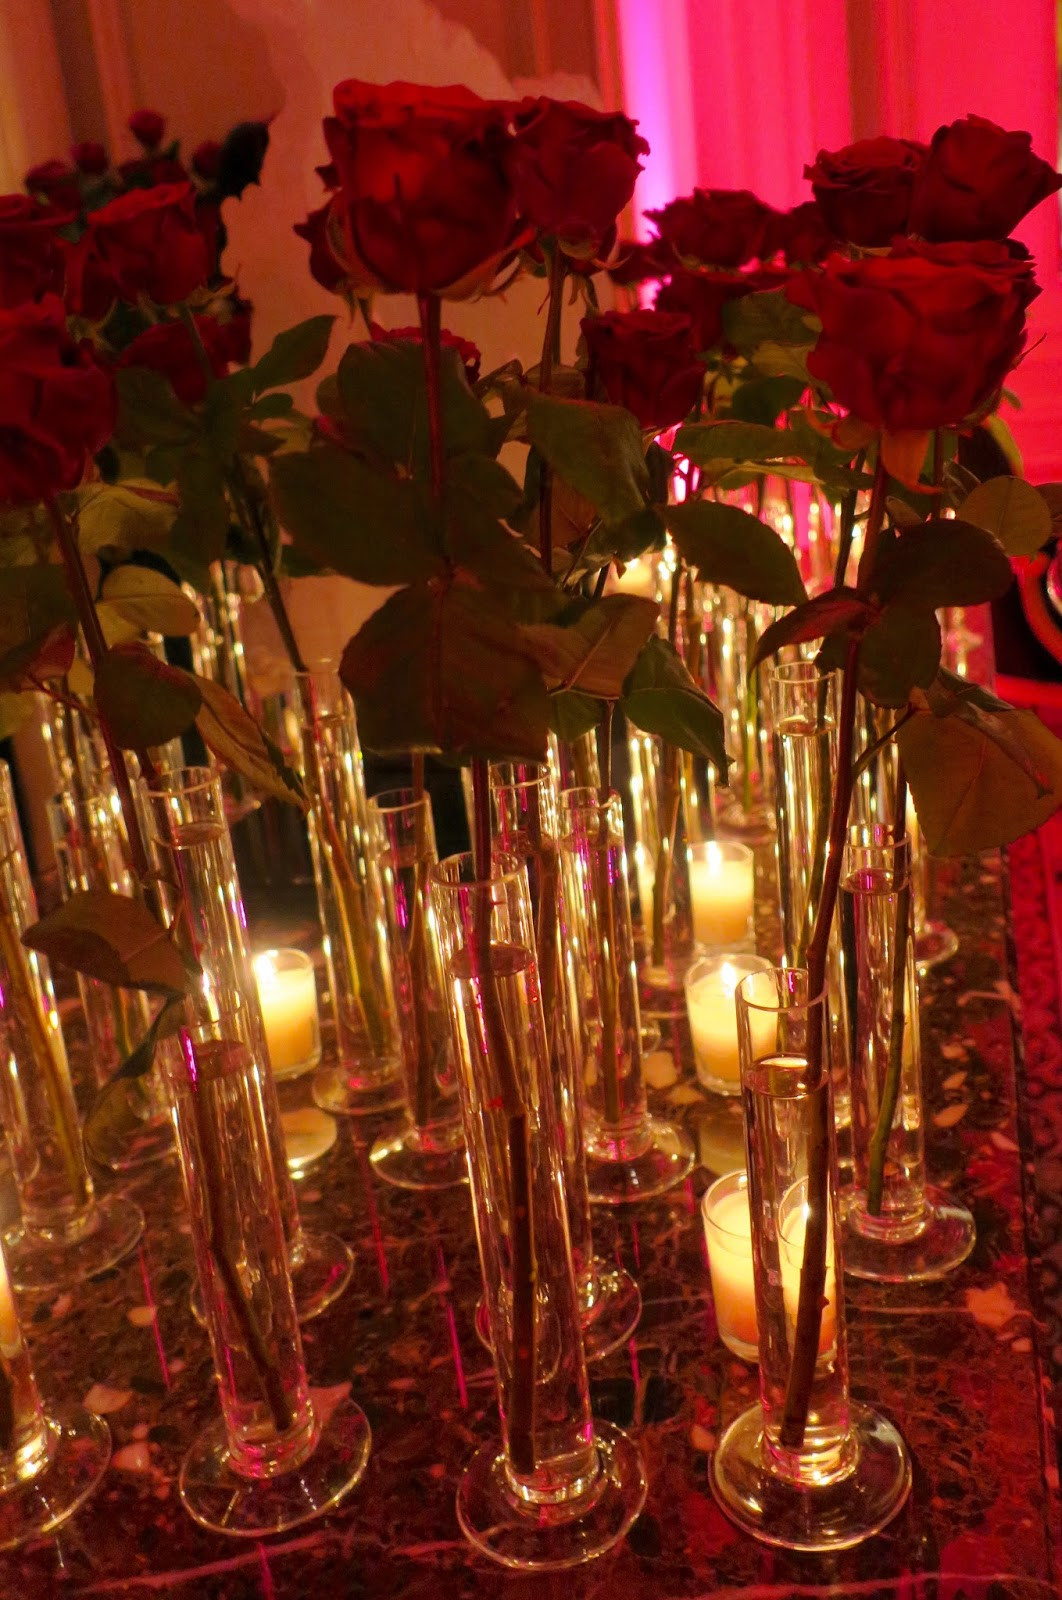 christofle orangerie vase of international luxury consulting four seasons hotel george v palace within four seasons hotel george v palace paris exceptional party for exceptional day happy valentines day publication by anne de champigneul